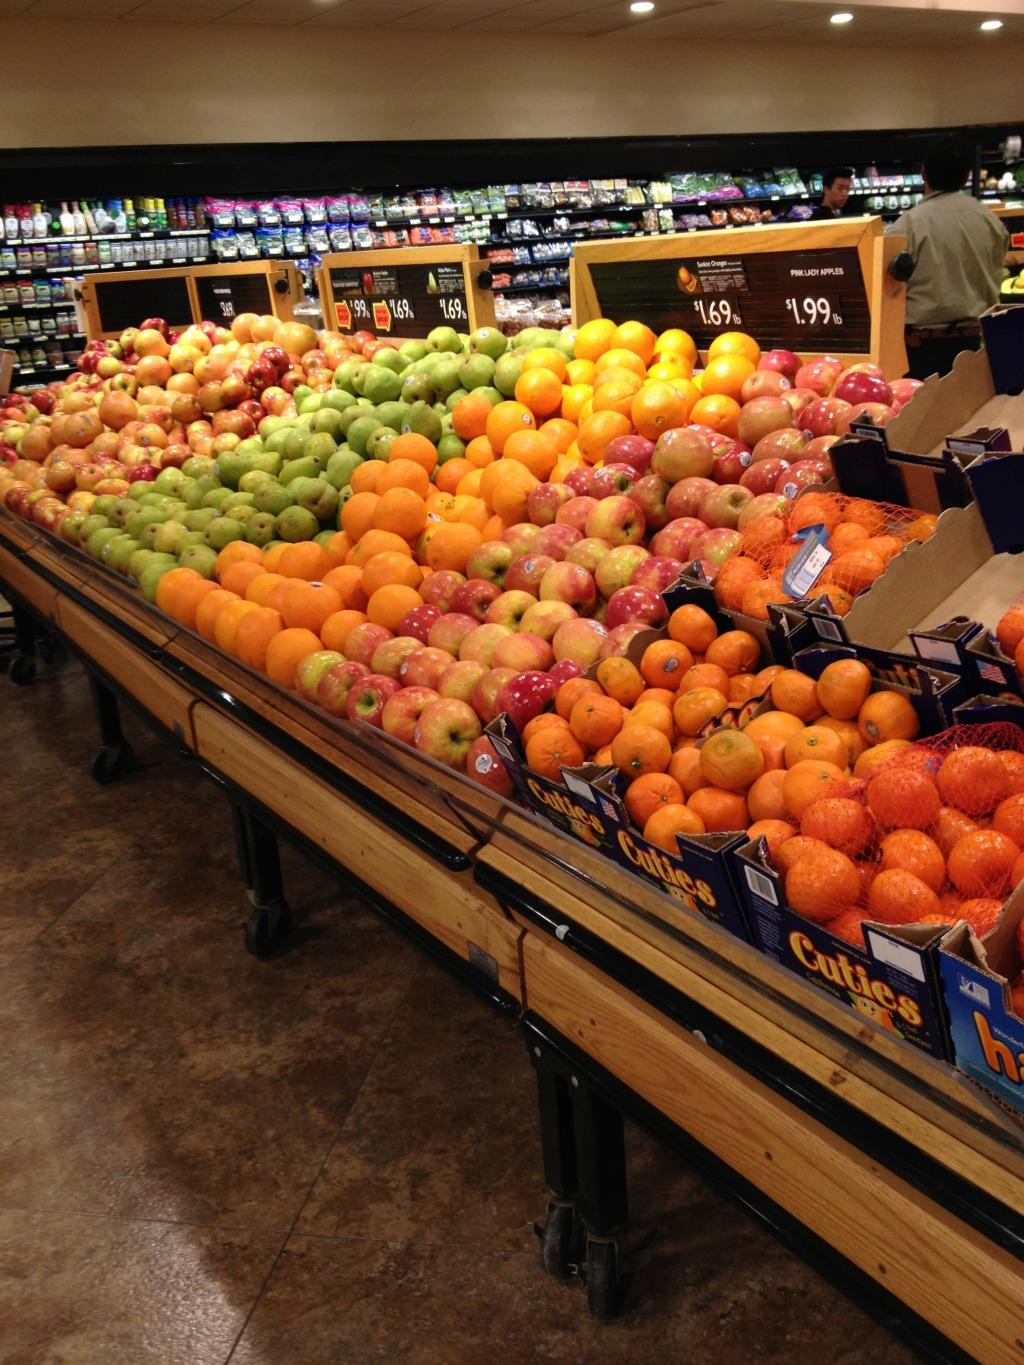 The produce at Lunds.